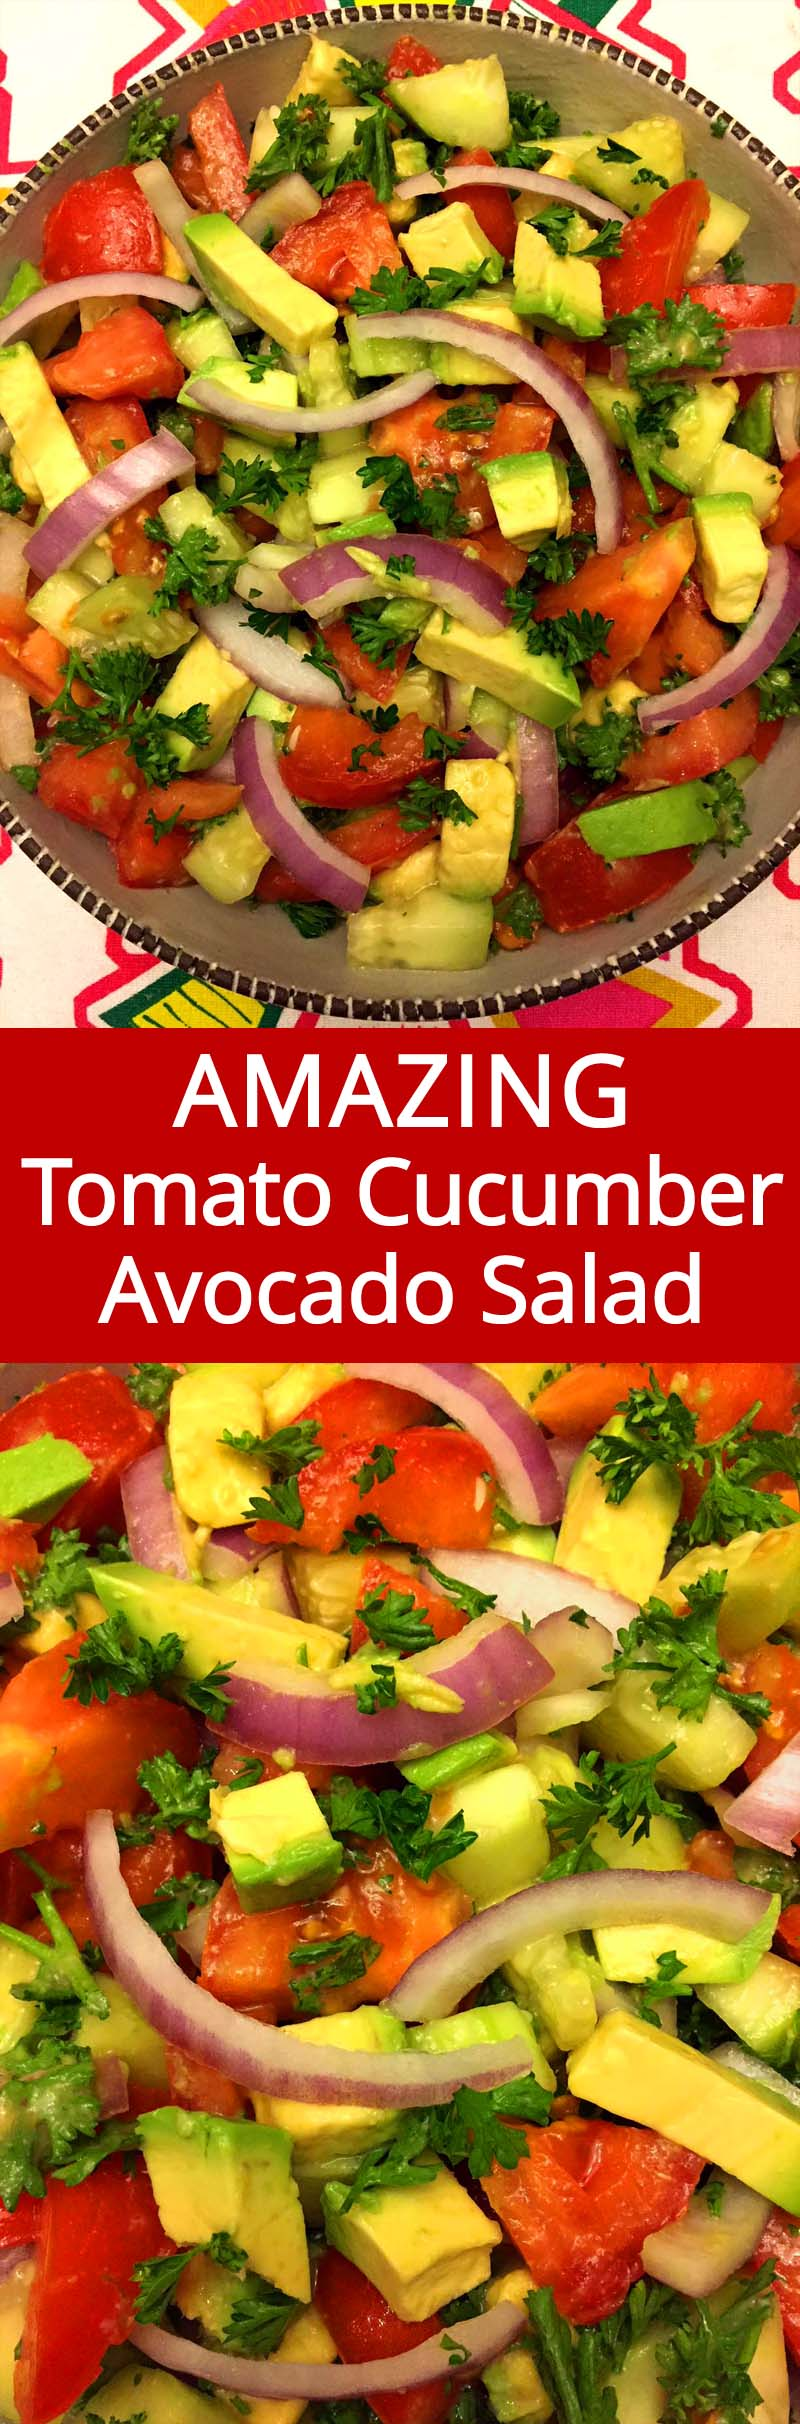 This tomato cucumber avocado salad is amazing! So full of flavor, crunchy and refreshing! Tomatoes, cucumbers, avocado, onions and parsley is such a great combo! I can eat this salad all day!